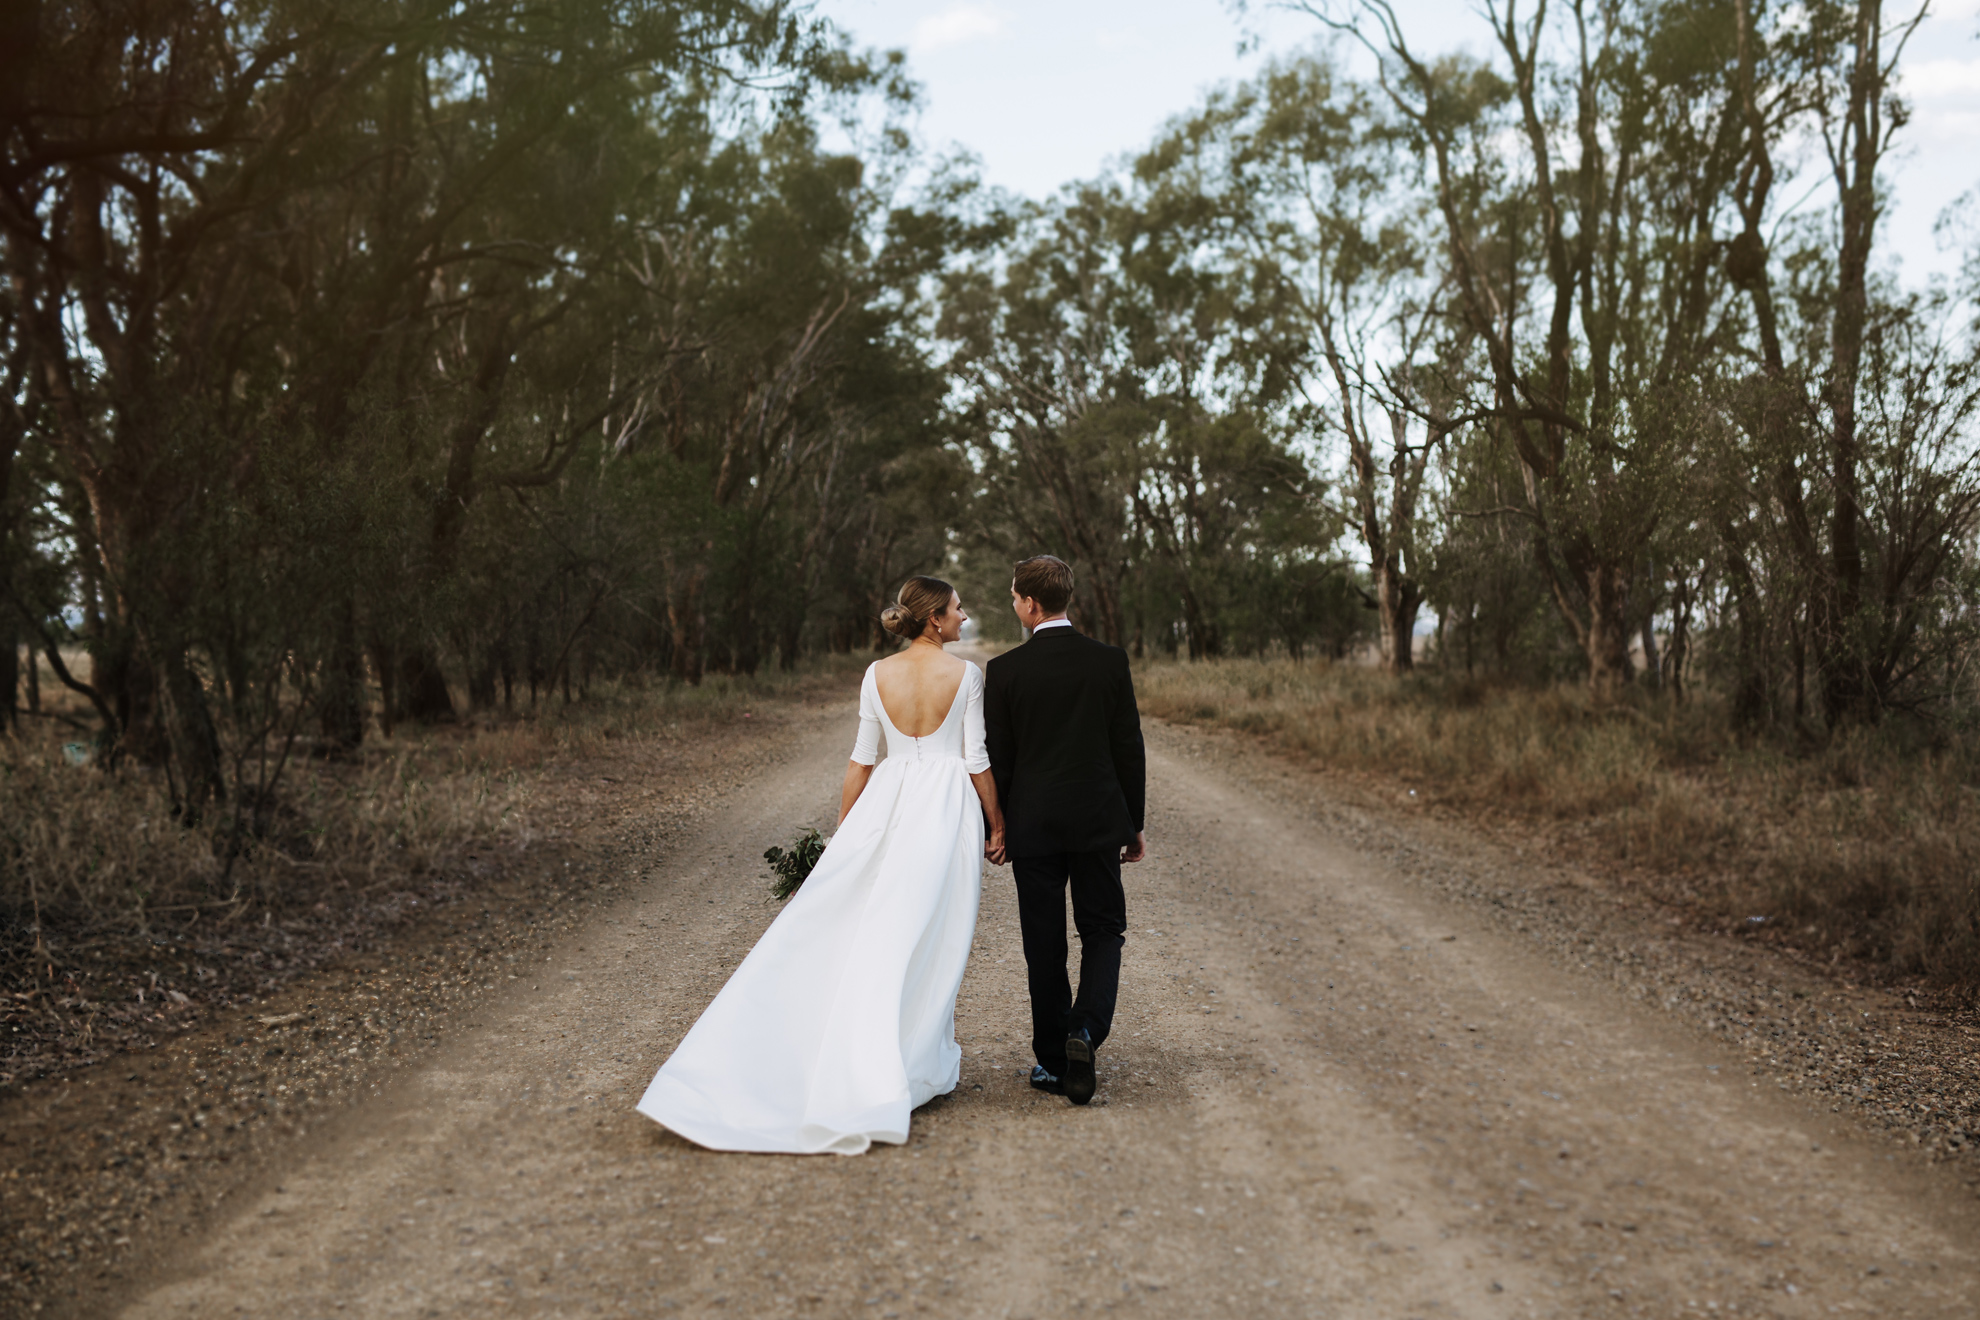 050-Chloe_Joe_Rockhampton_Wedding.jpg